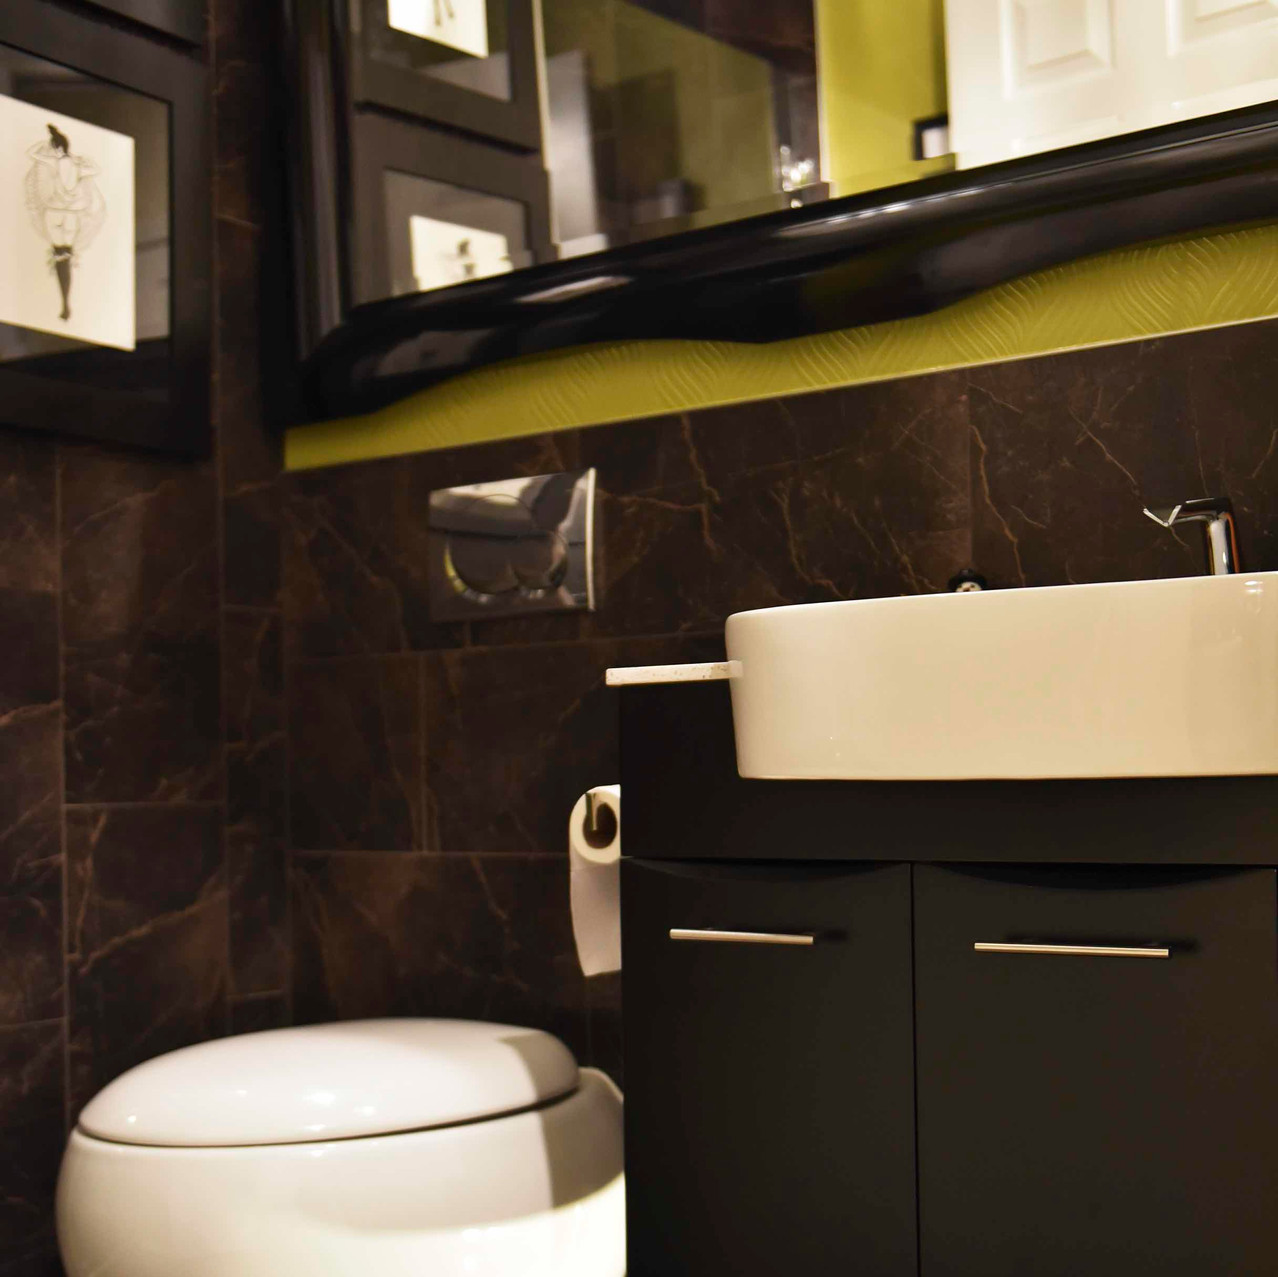 Wall mounted toilet